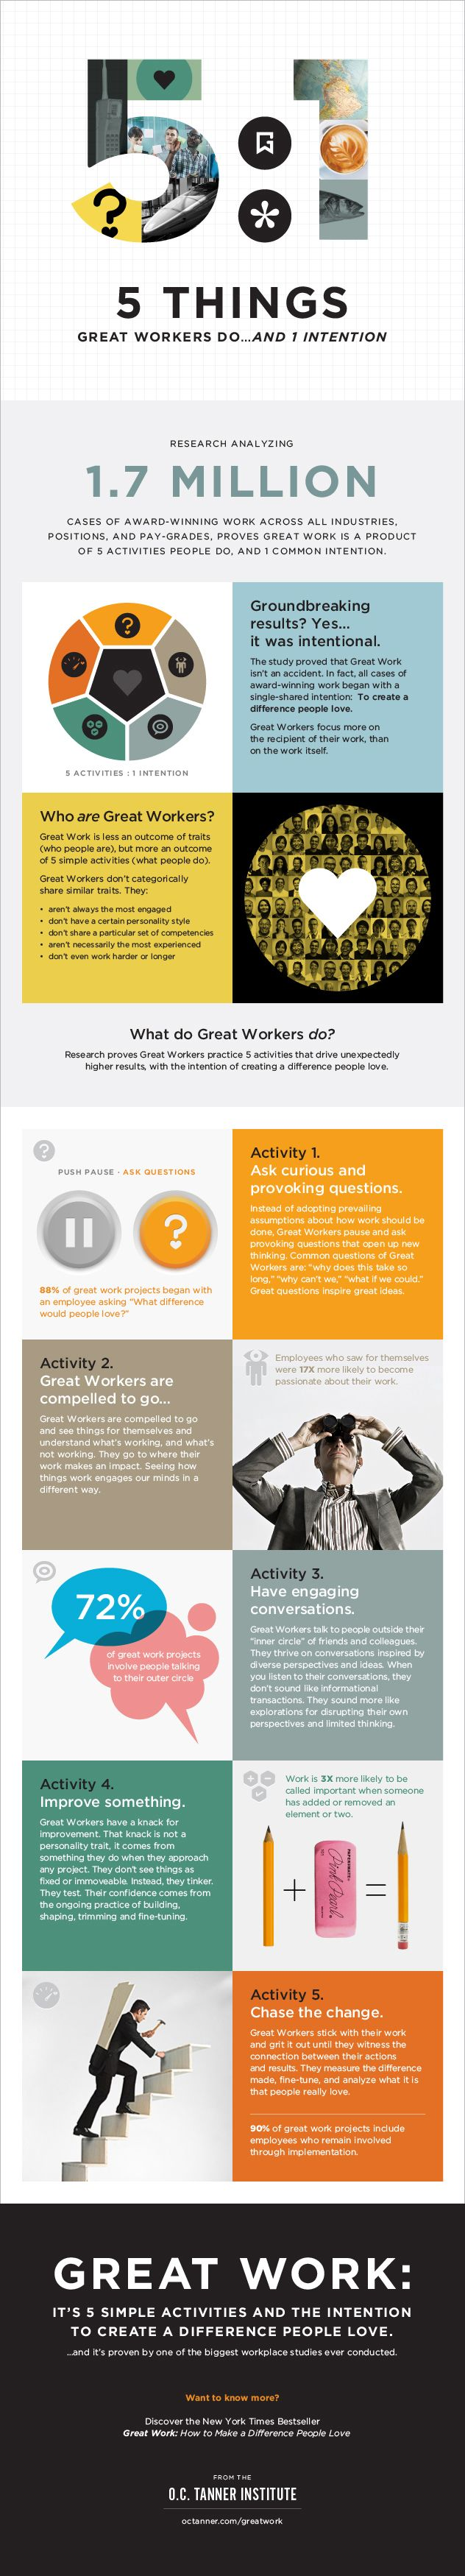 Infographic: Key Activities of Top-Performing Employees